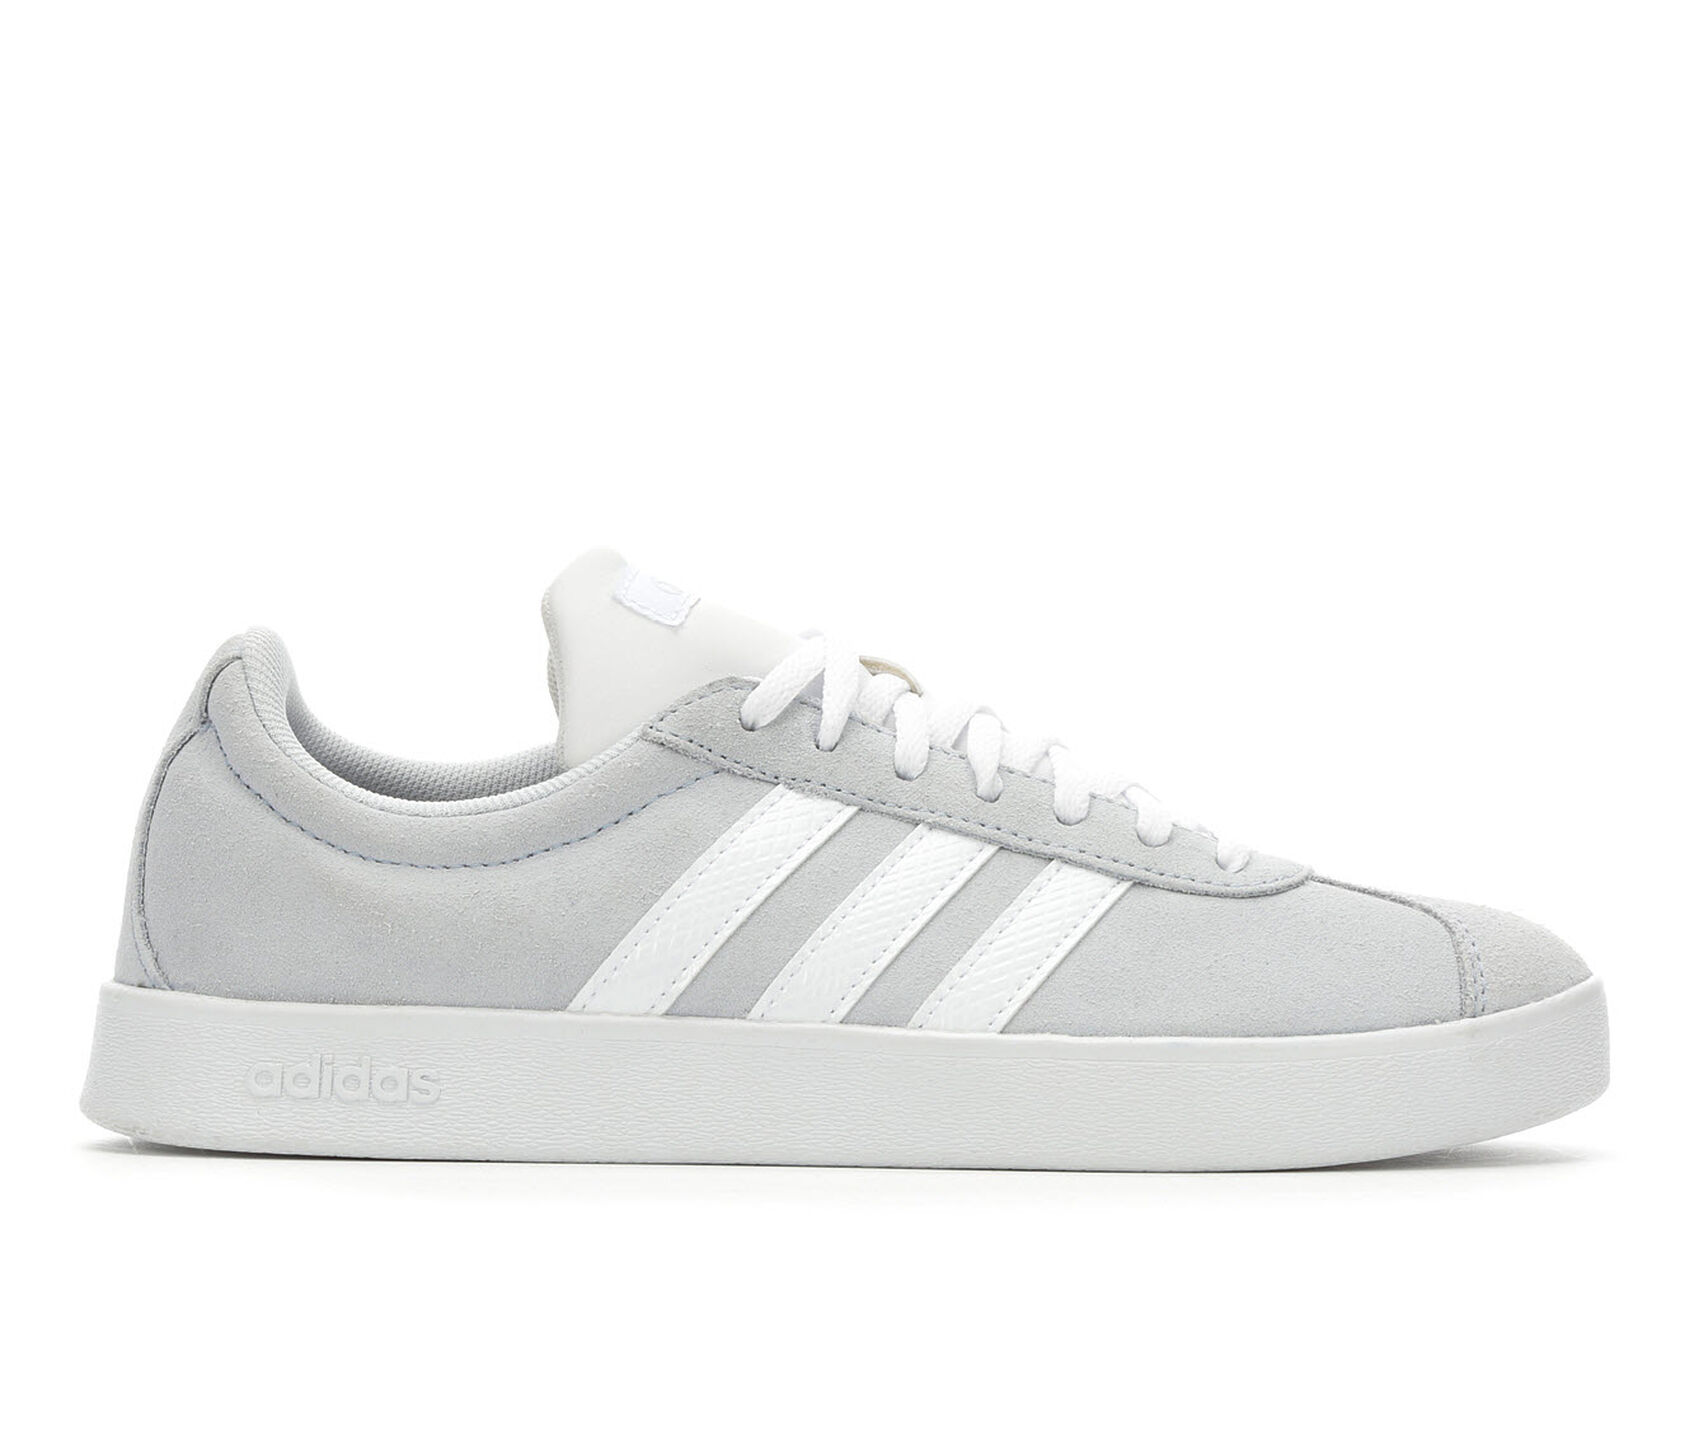 ee0286b0f7c9fc ... Adidas VL Court 2.0 Tennis Shoes. Previous